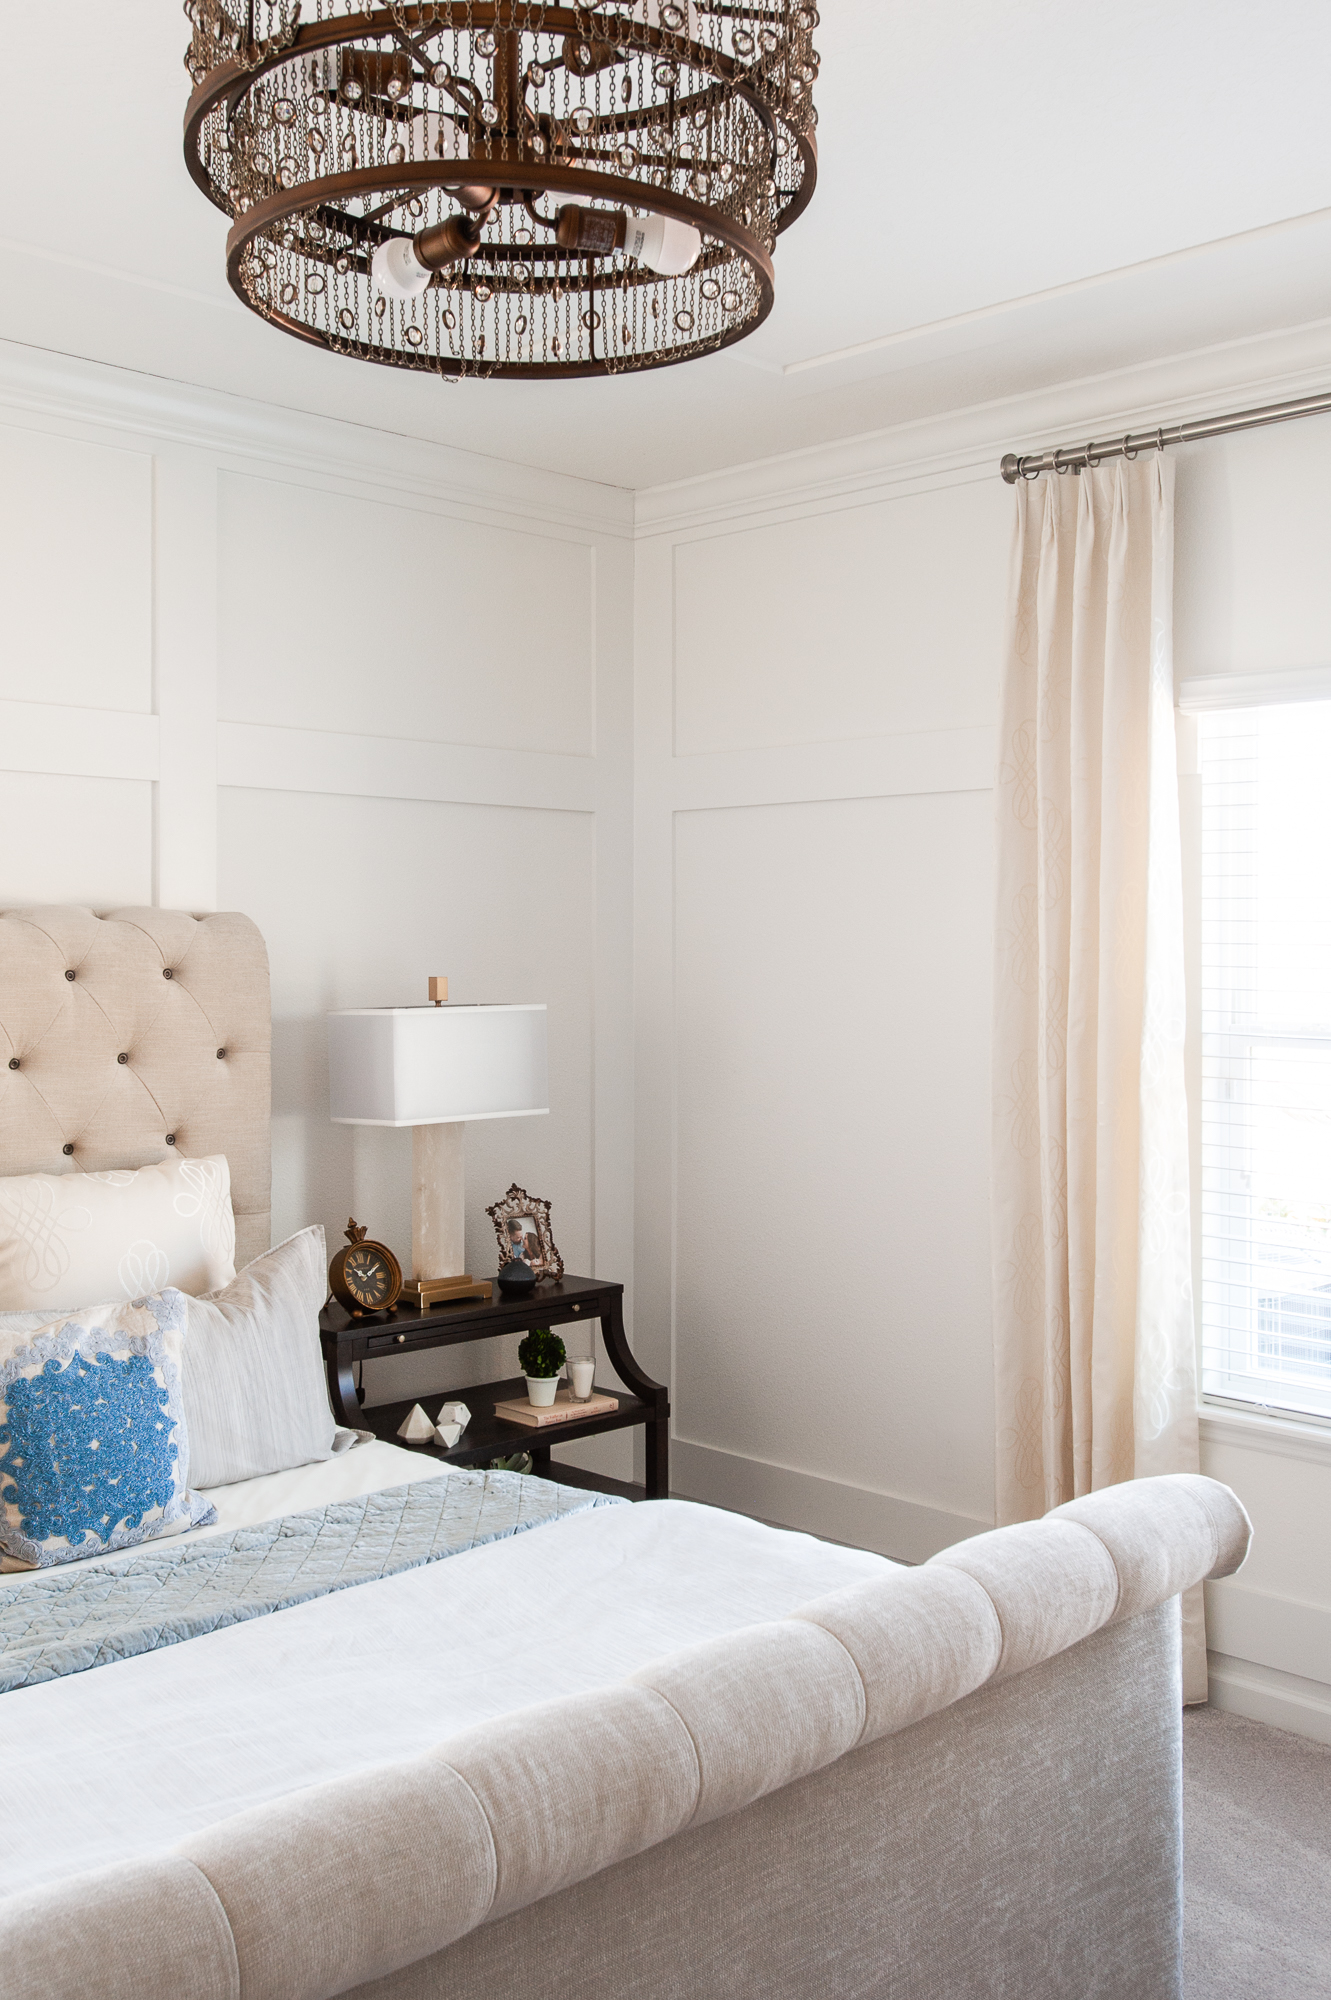 Micamy_Interior Designer_Design_Interior_Model_Merchandising_Owners_Suite_Universal_Furniture_Traditional_Transitional_Upholstered_Headbooard_Bronze_Bedroom_Blue.jpg